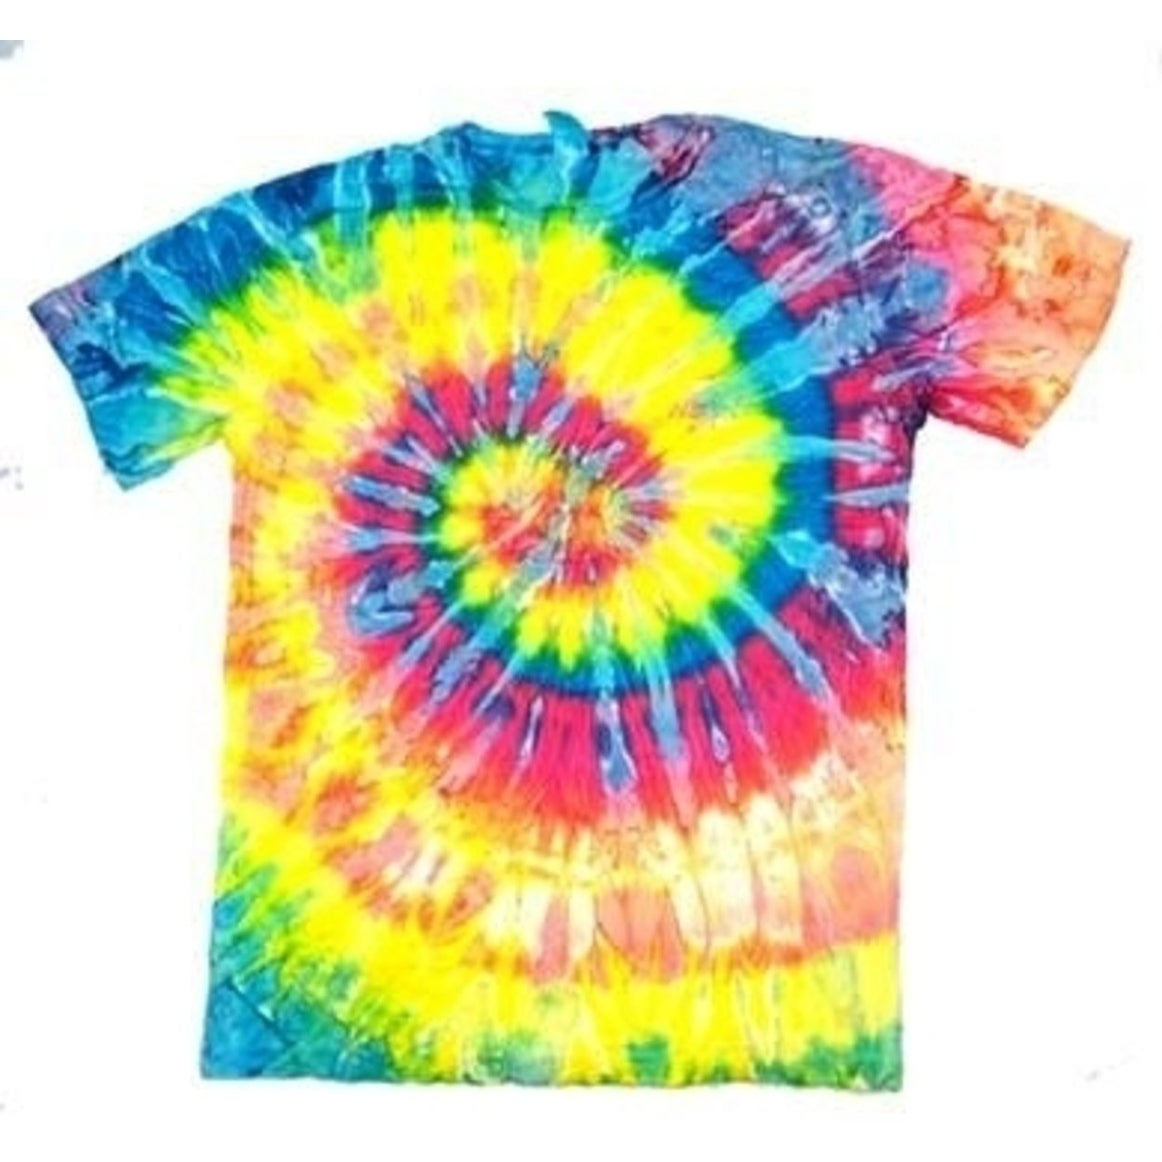 c57dc4e11aca Shop ADULT LARGE SLIM FIT NEON RAINBOW TIE DYE TEE SHIRT 4 mens womens  SWIRL - Free Shipping On Orders Over  45 - Overstock - 27162899